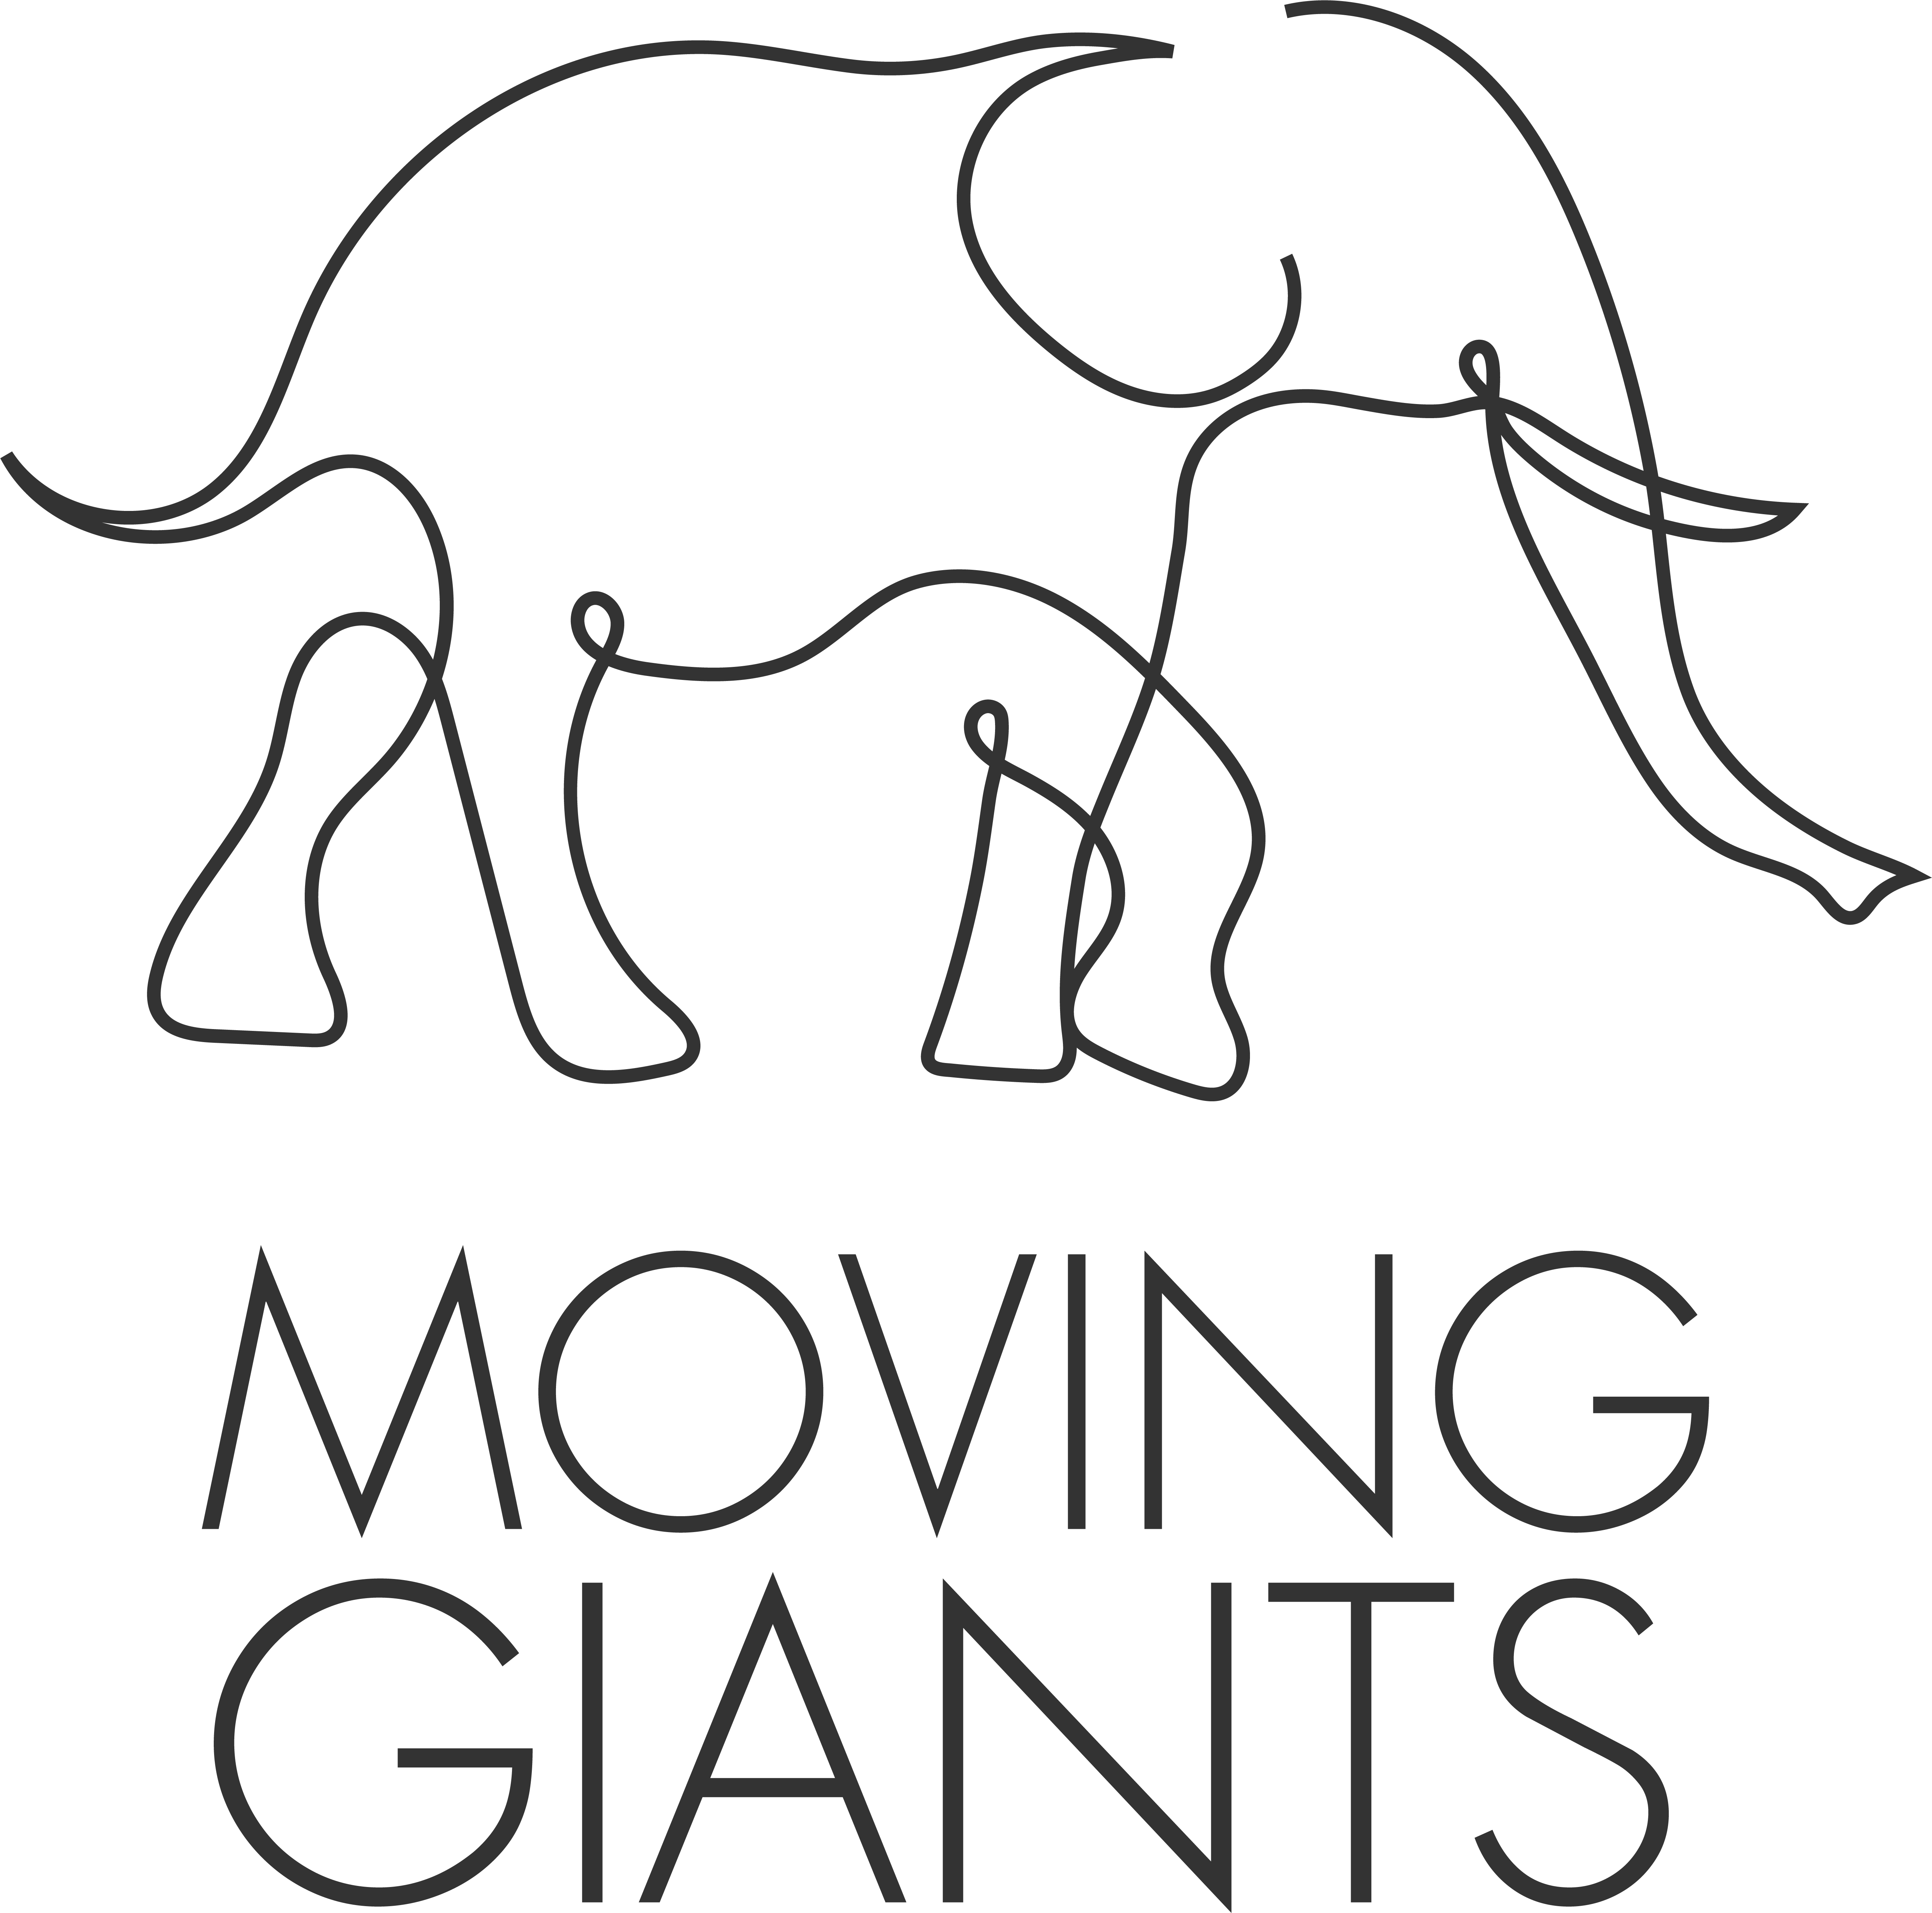 Moving Giants logo